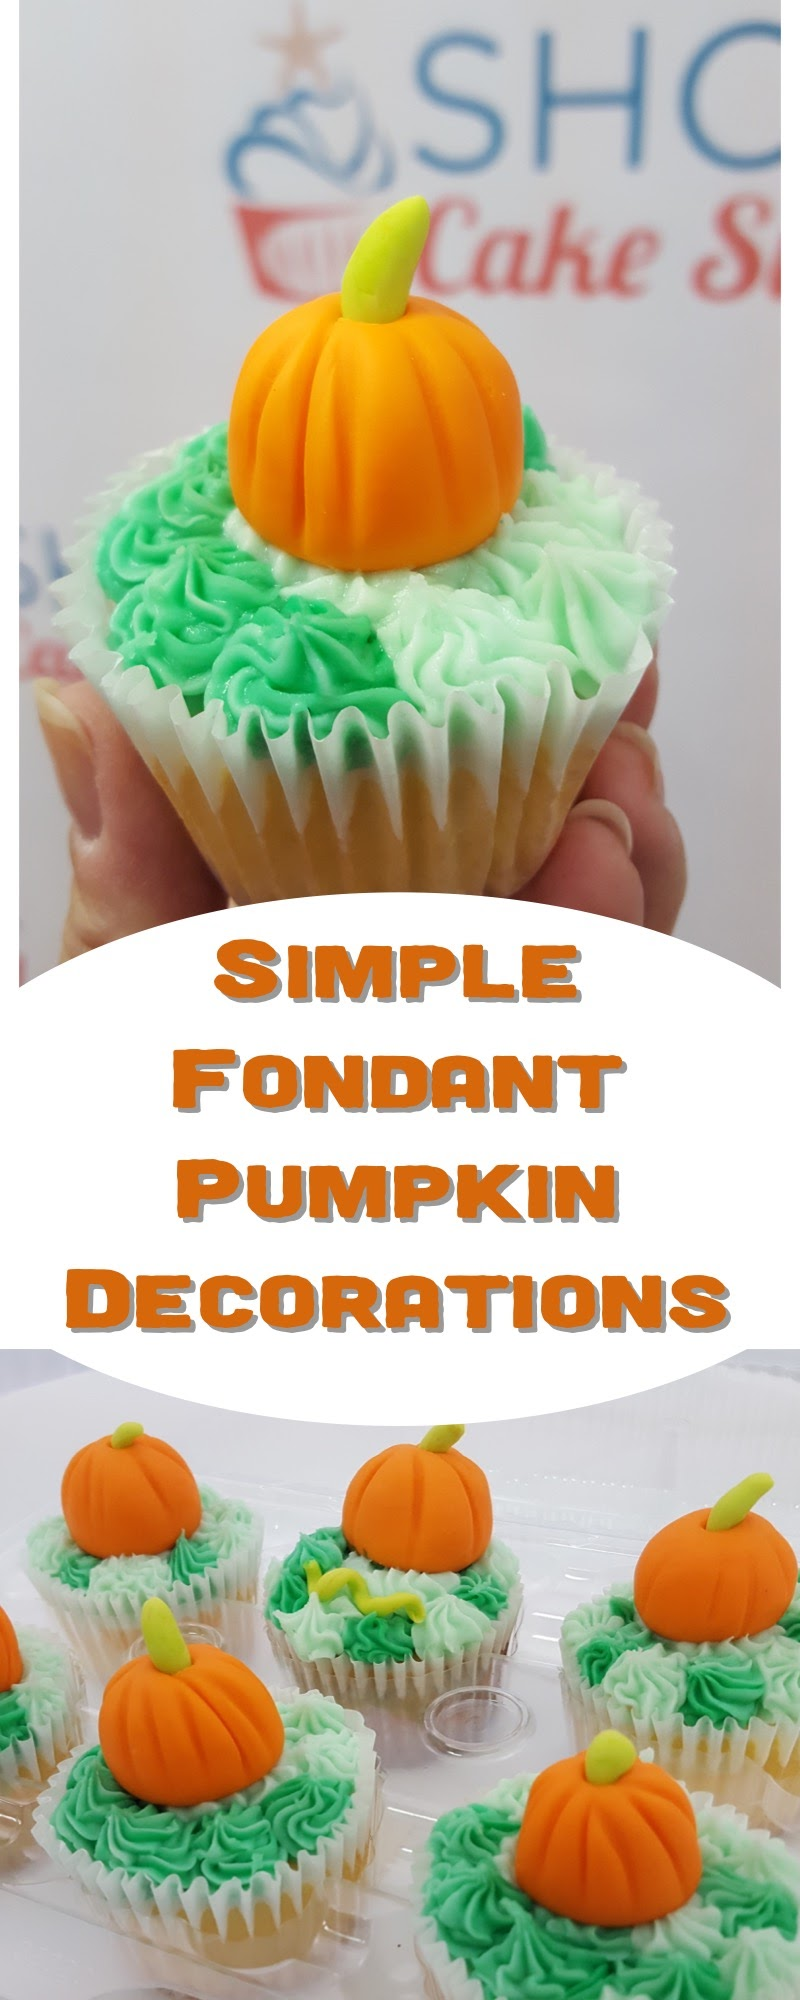 fondant, cupcakes, decorating, cakes, autumn